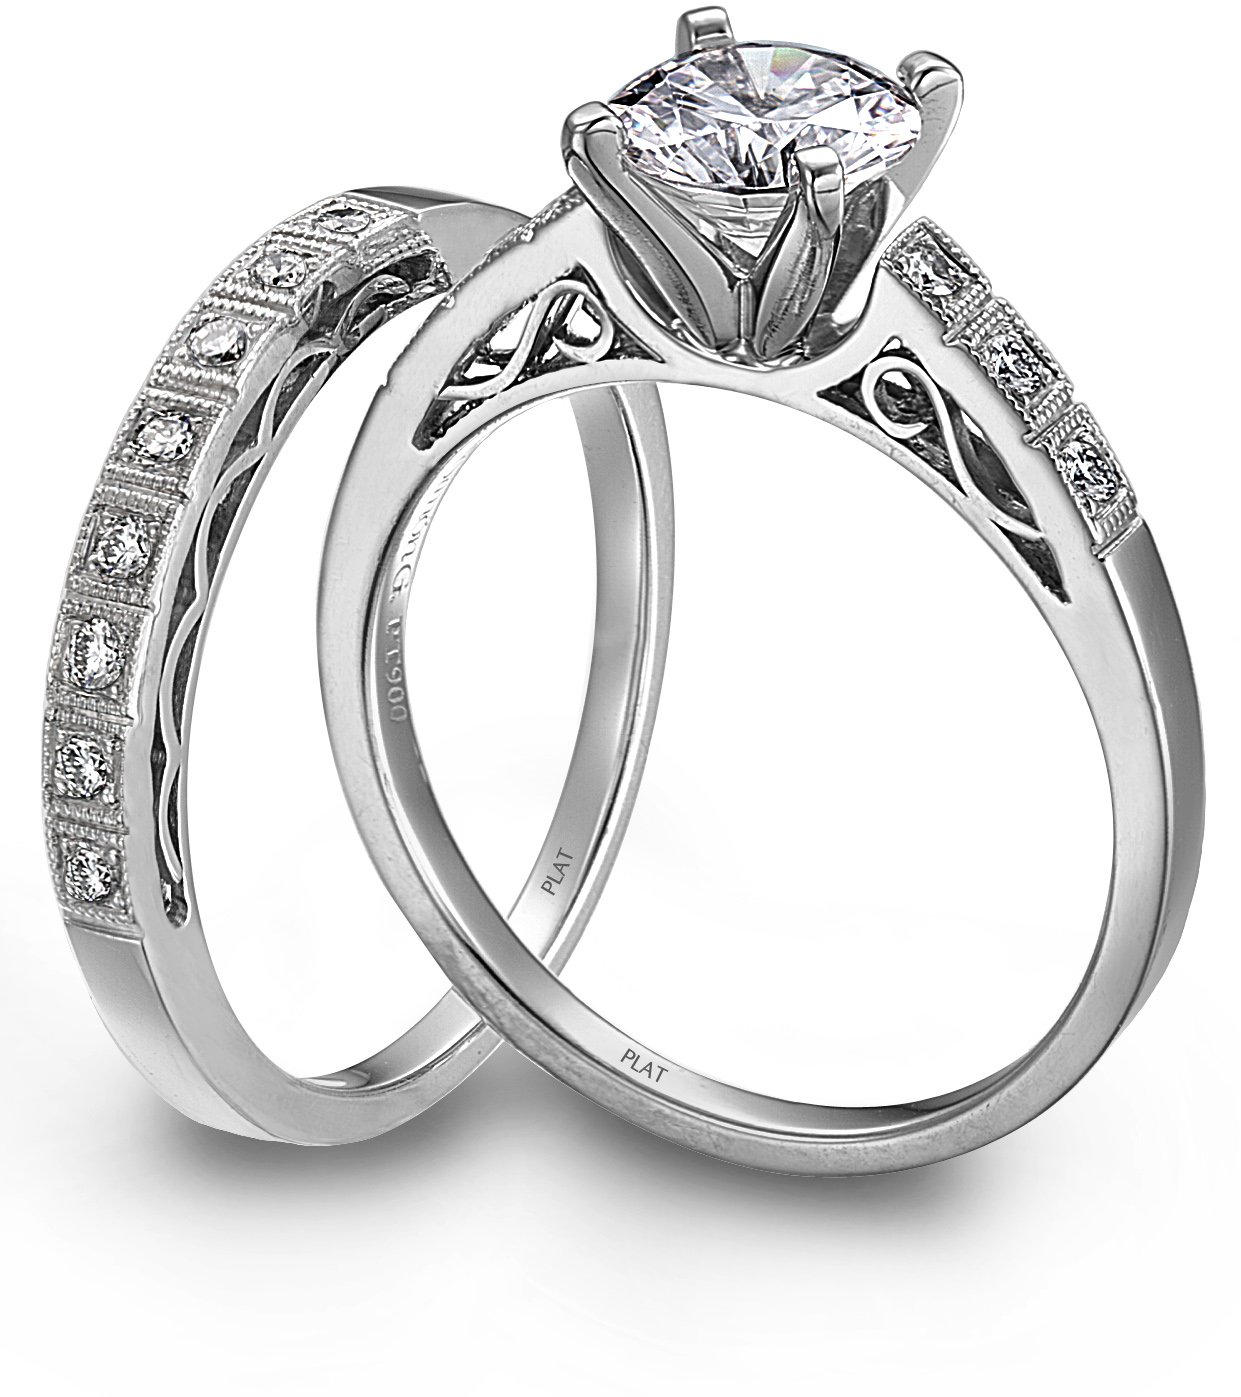 womans wedding ring - Wedding Rings Pictures